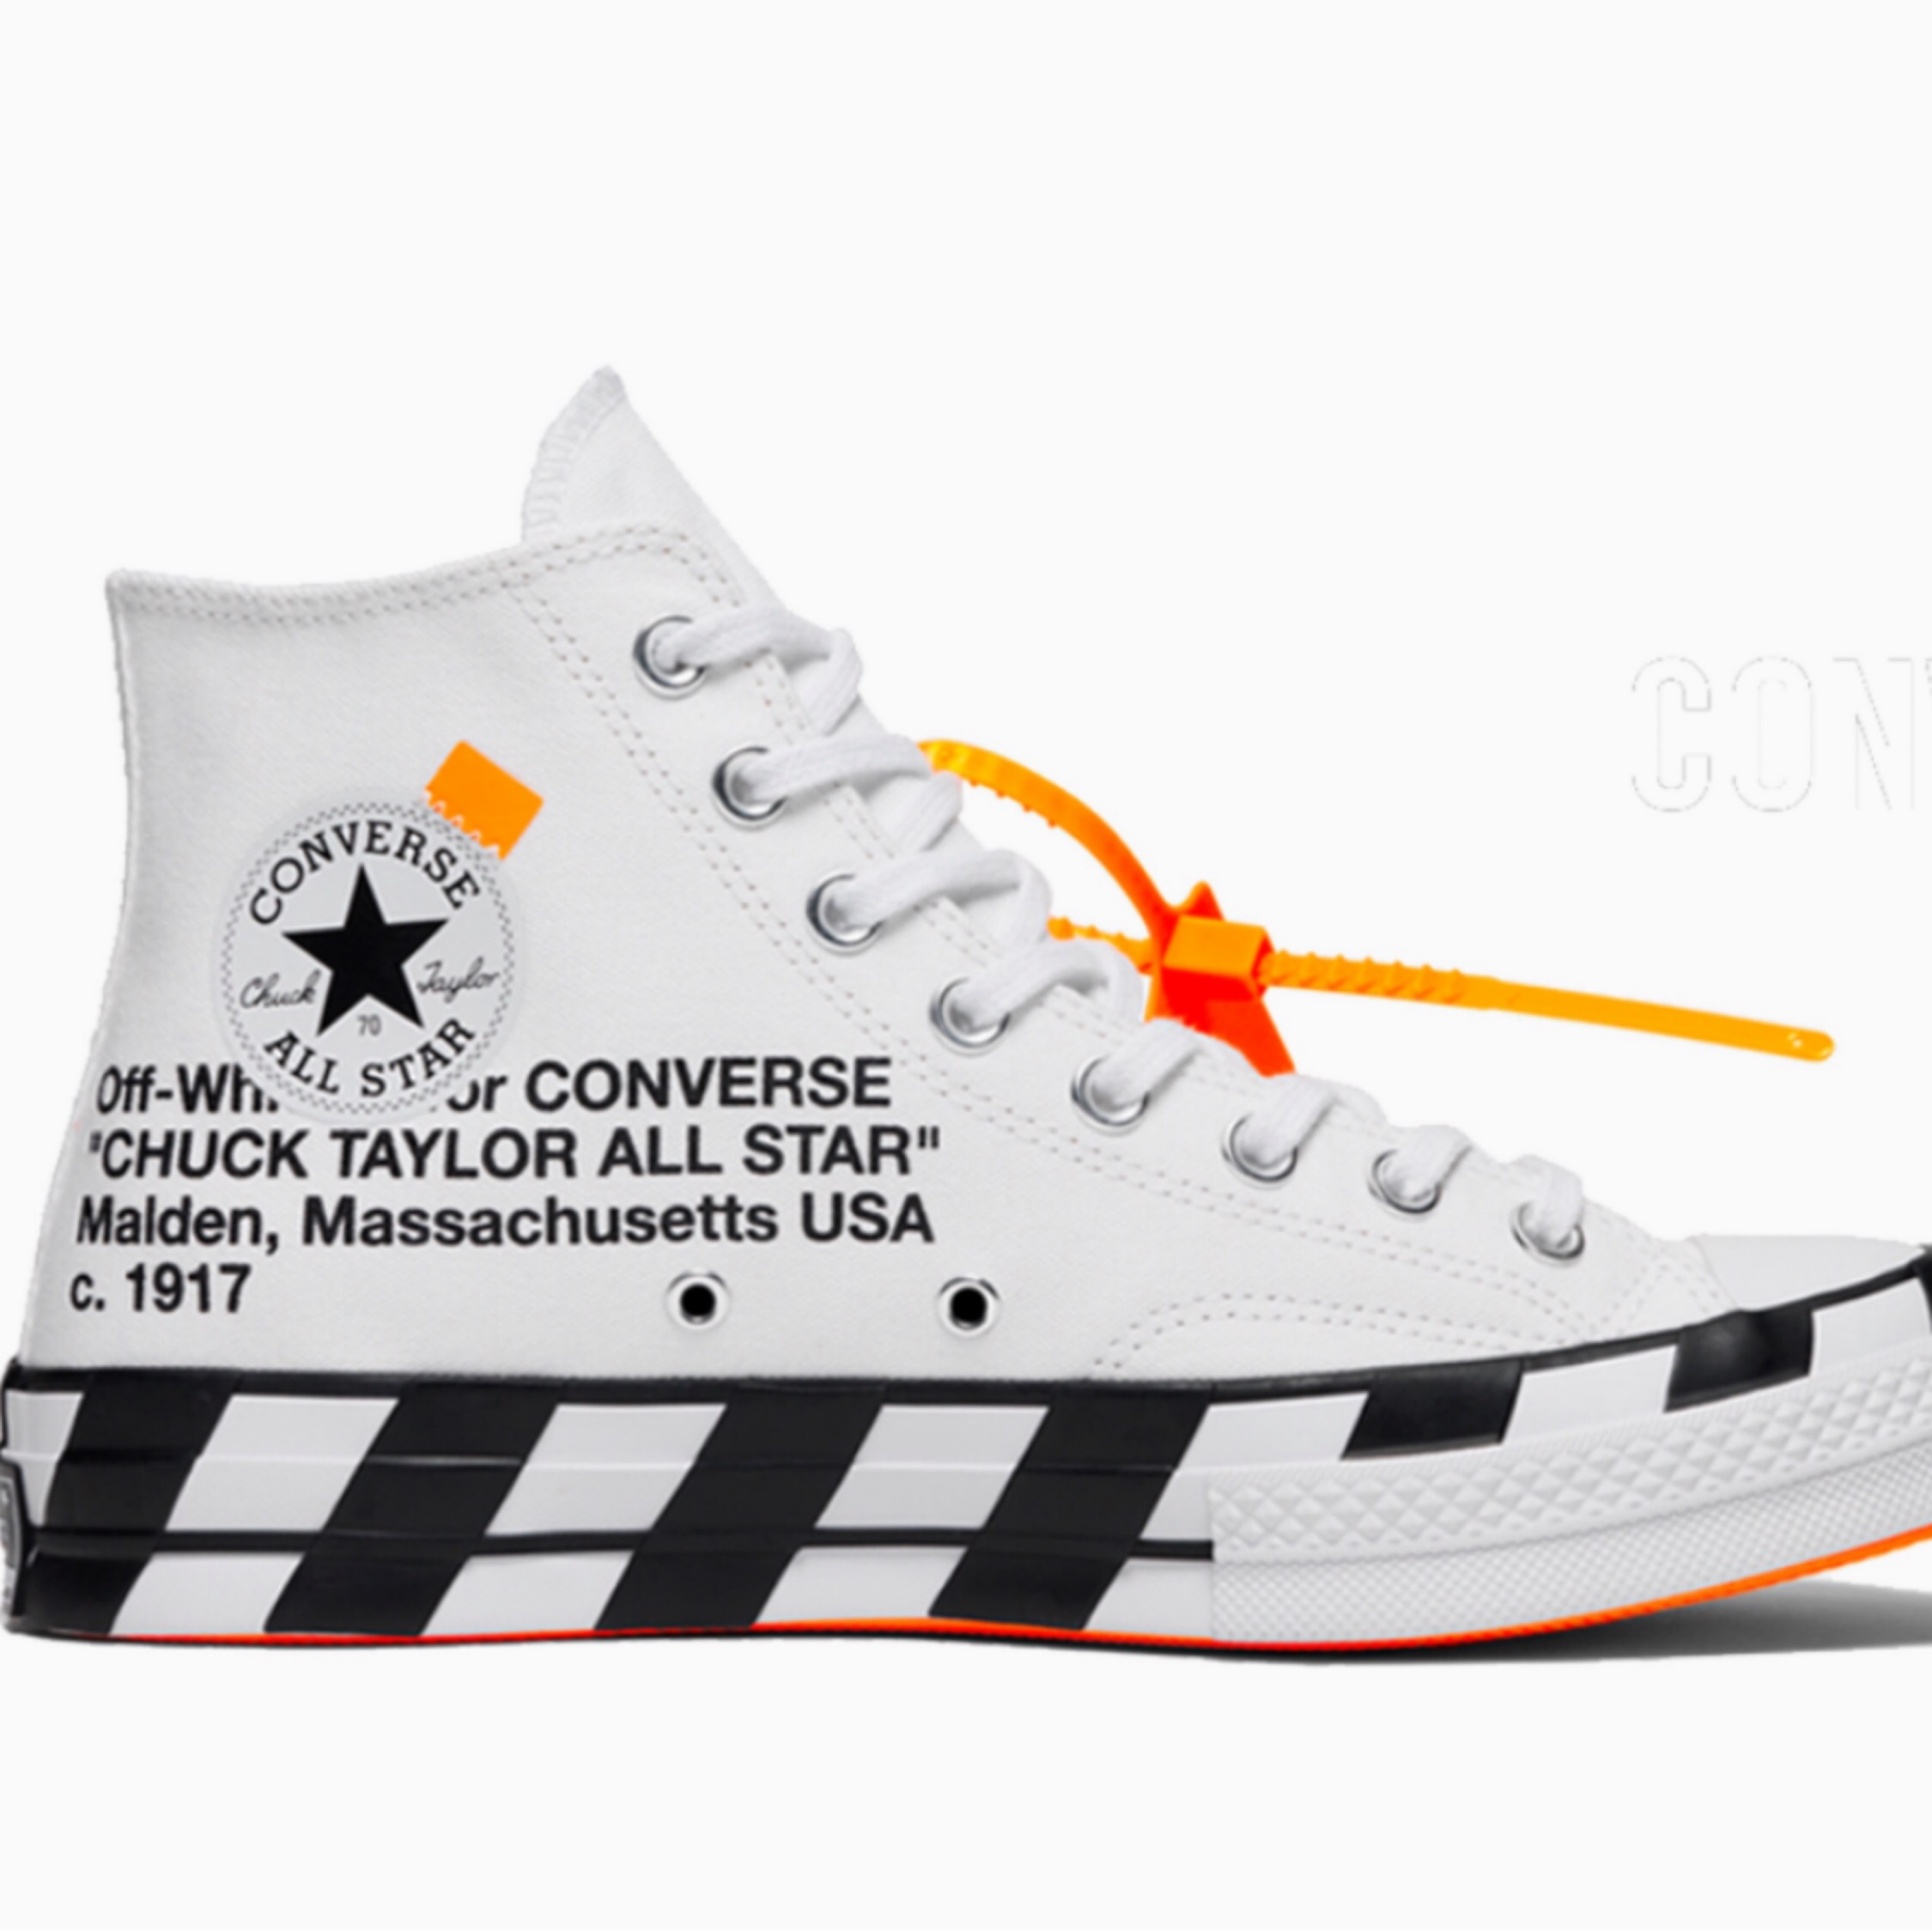 Chuck Taylor All Star Hi Off White